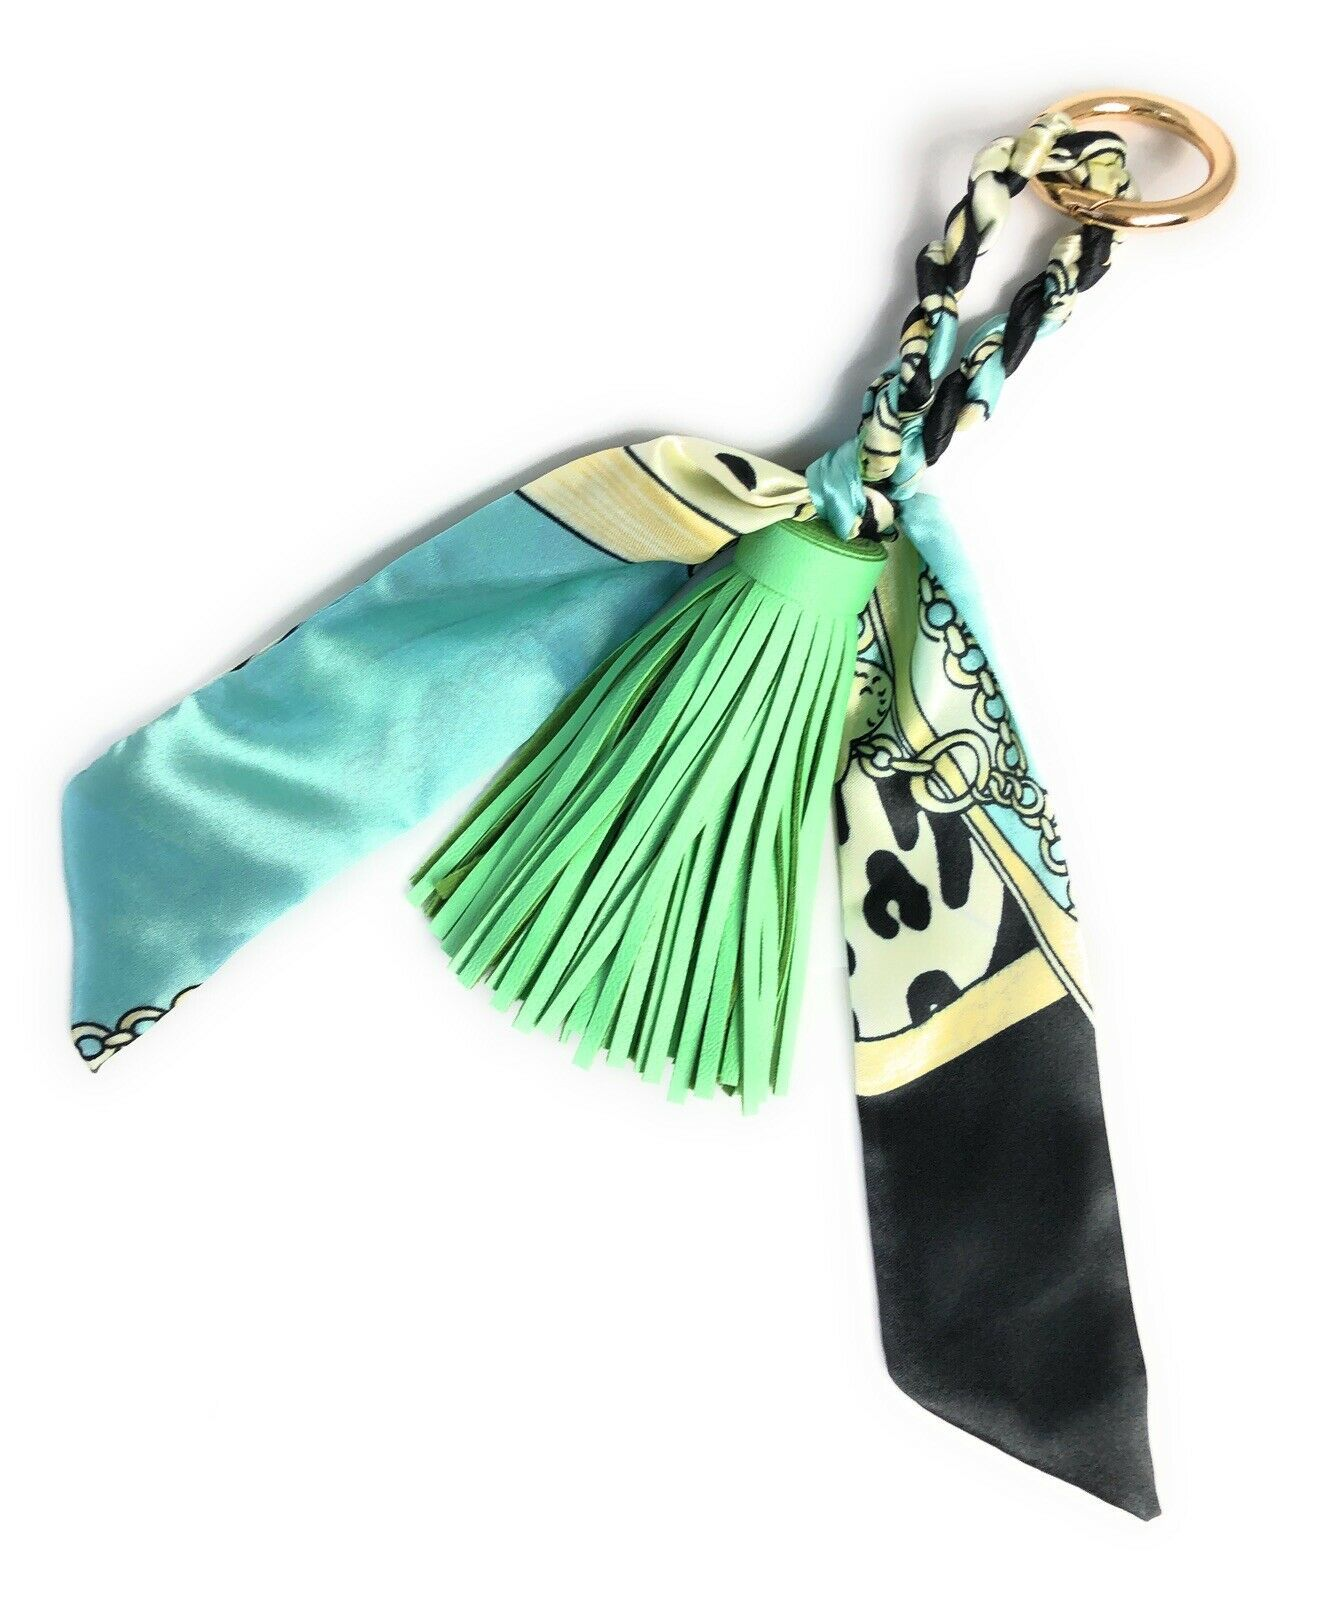 Primary image for Women Tassel and Scarf Handbag Charm Accessory Key Ring US seller